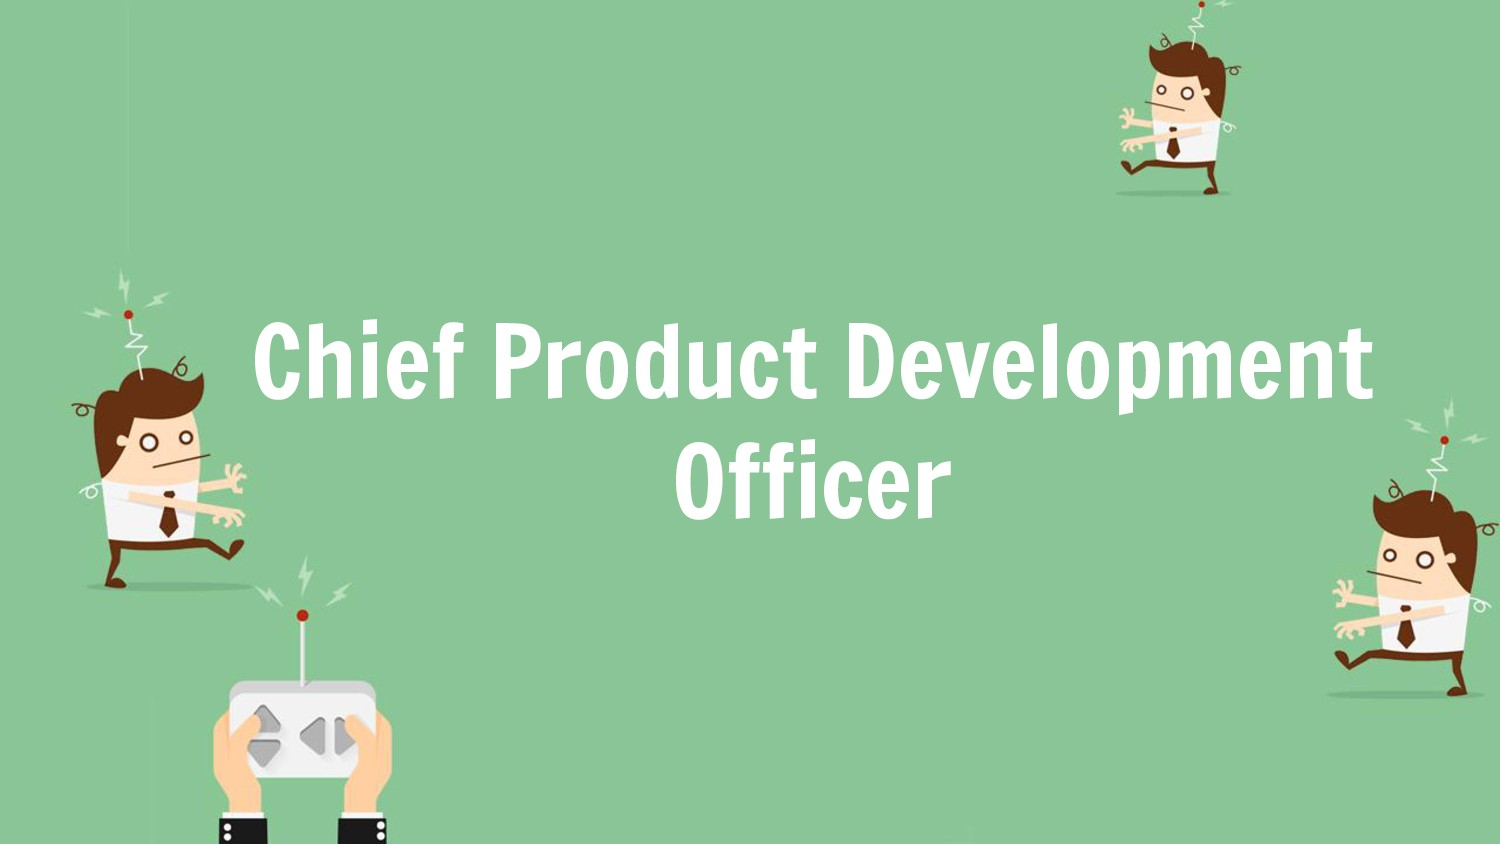 Chief Product Development Officer